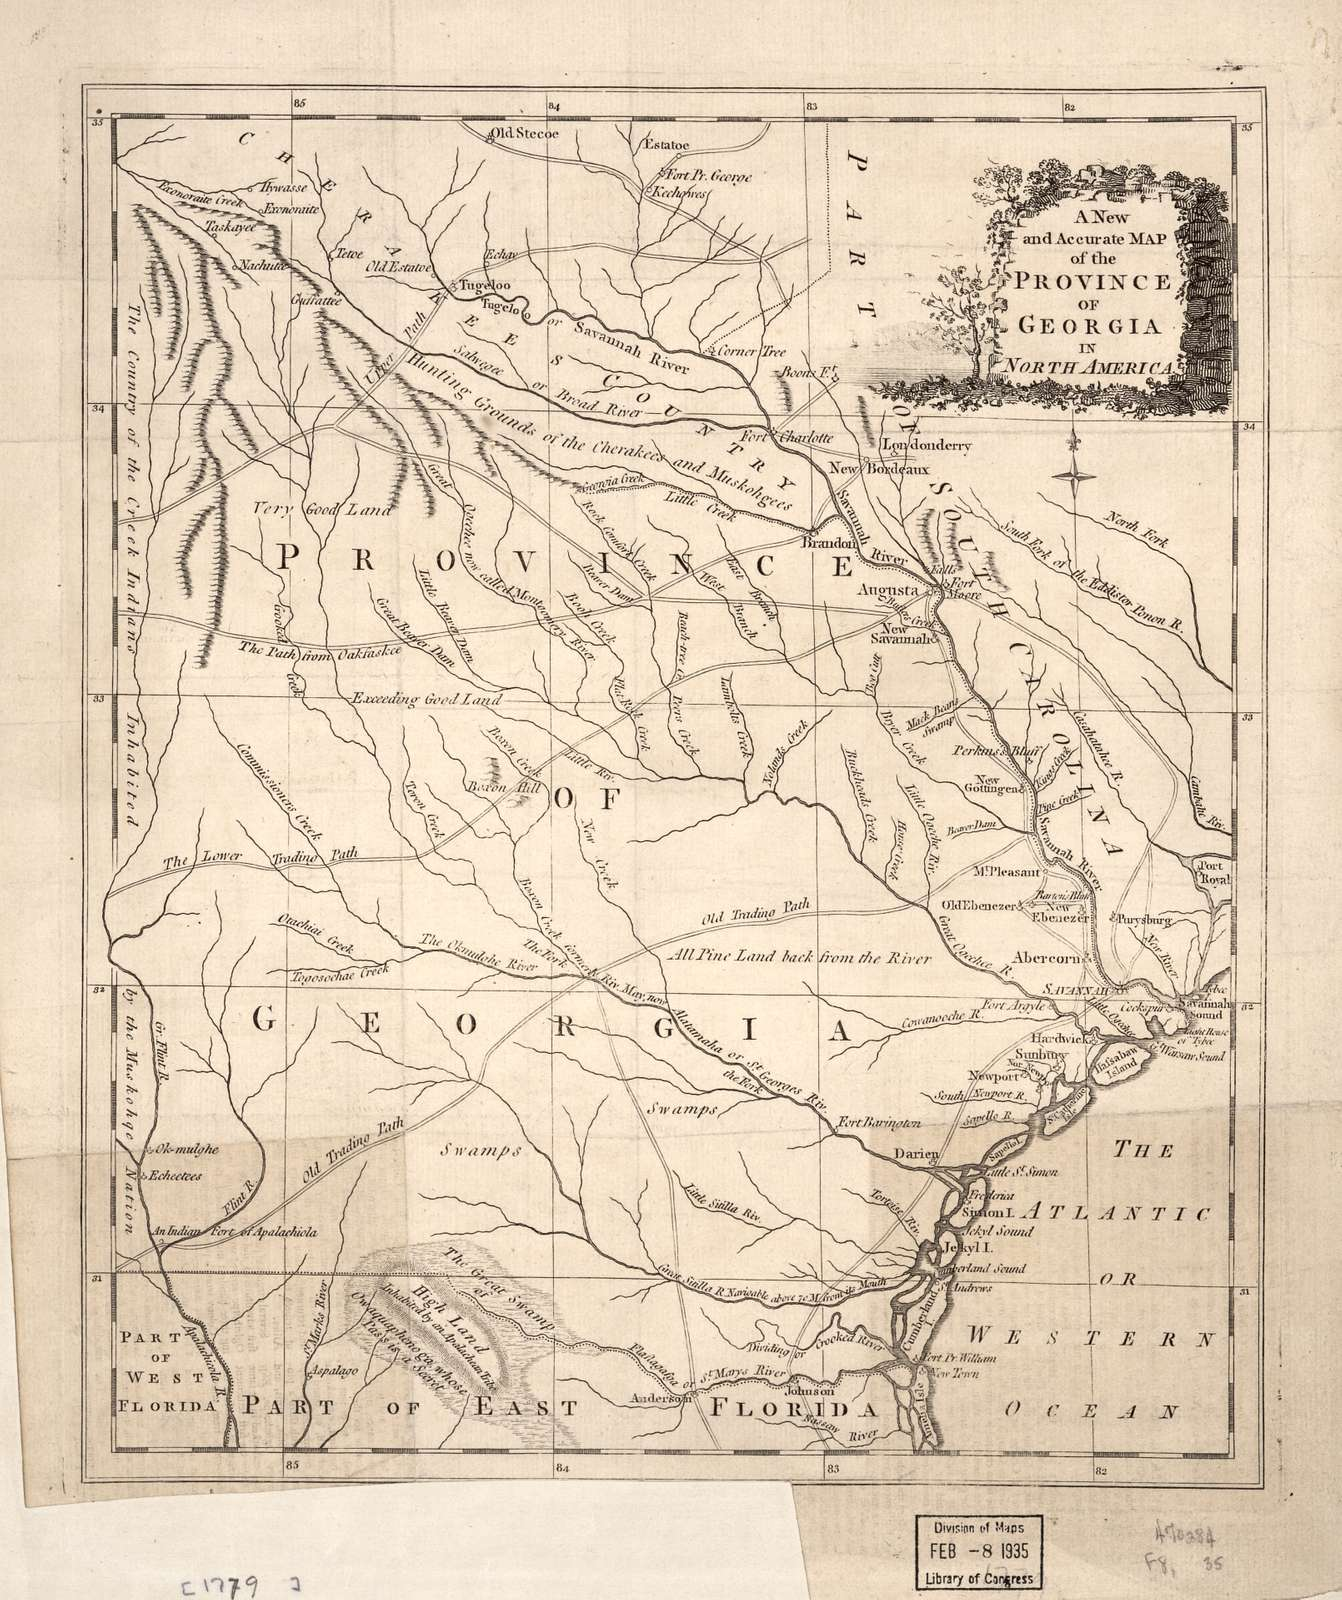 A new and accurate map of the province of Georgia in North America.